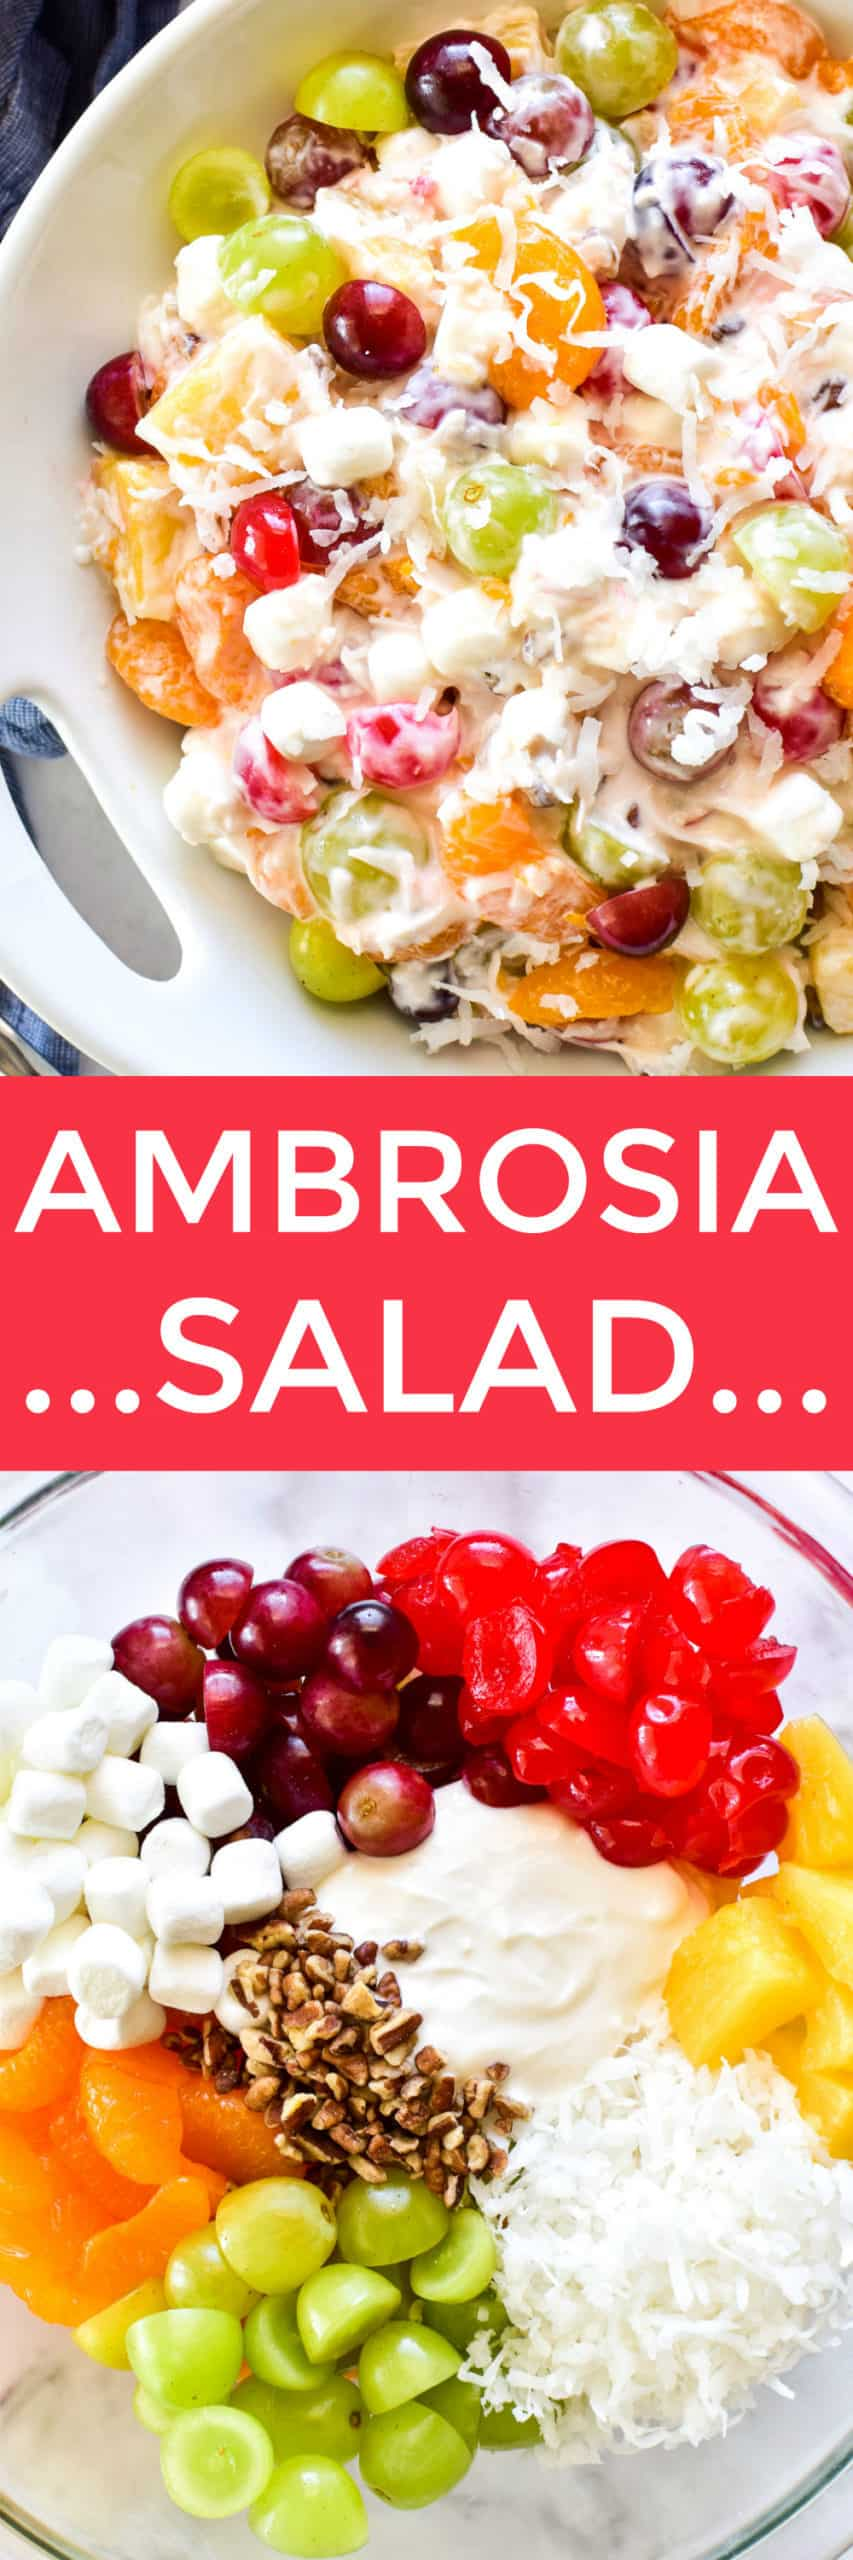 Collage image of Ambrosia Salad and ingredients